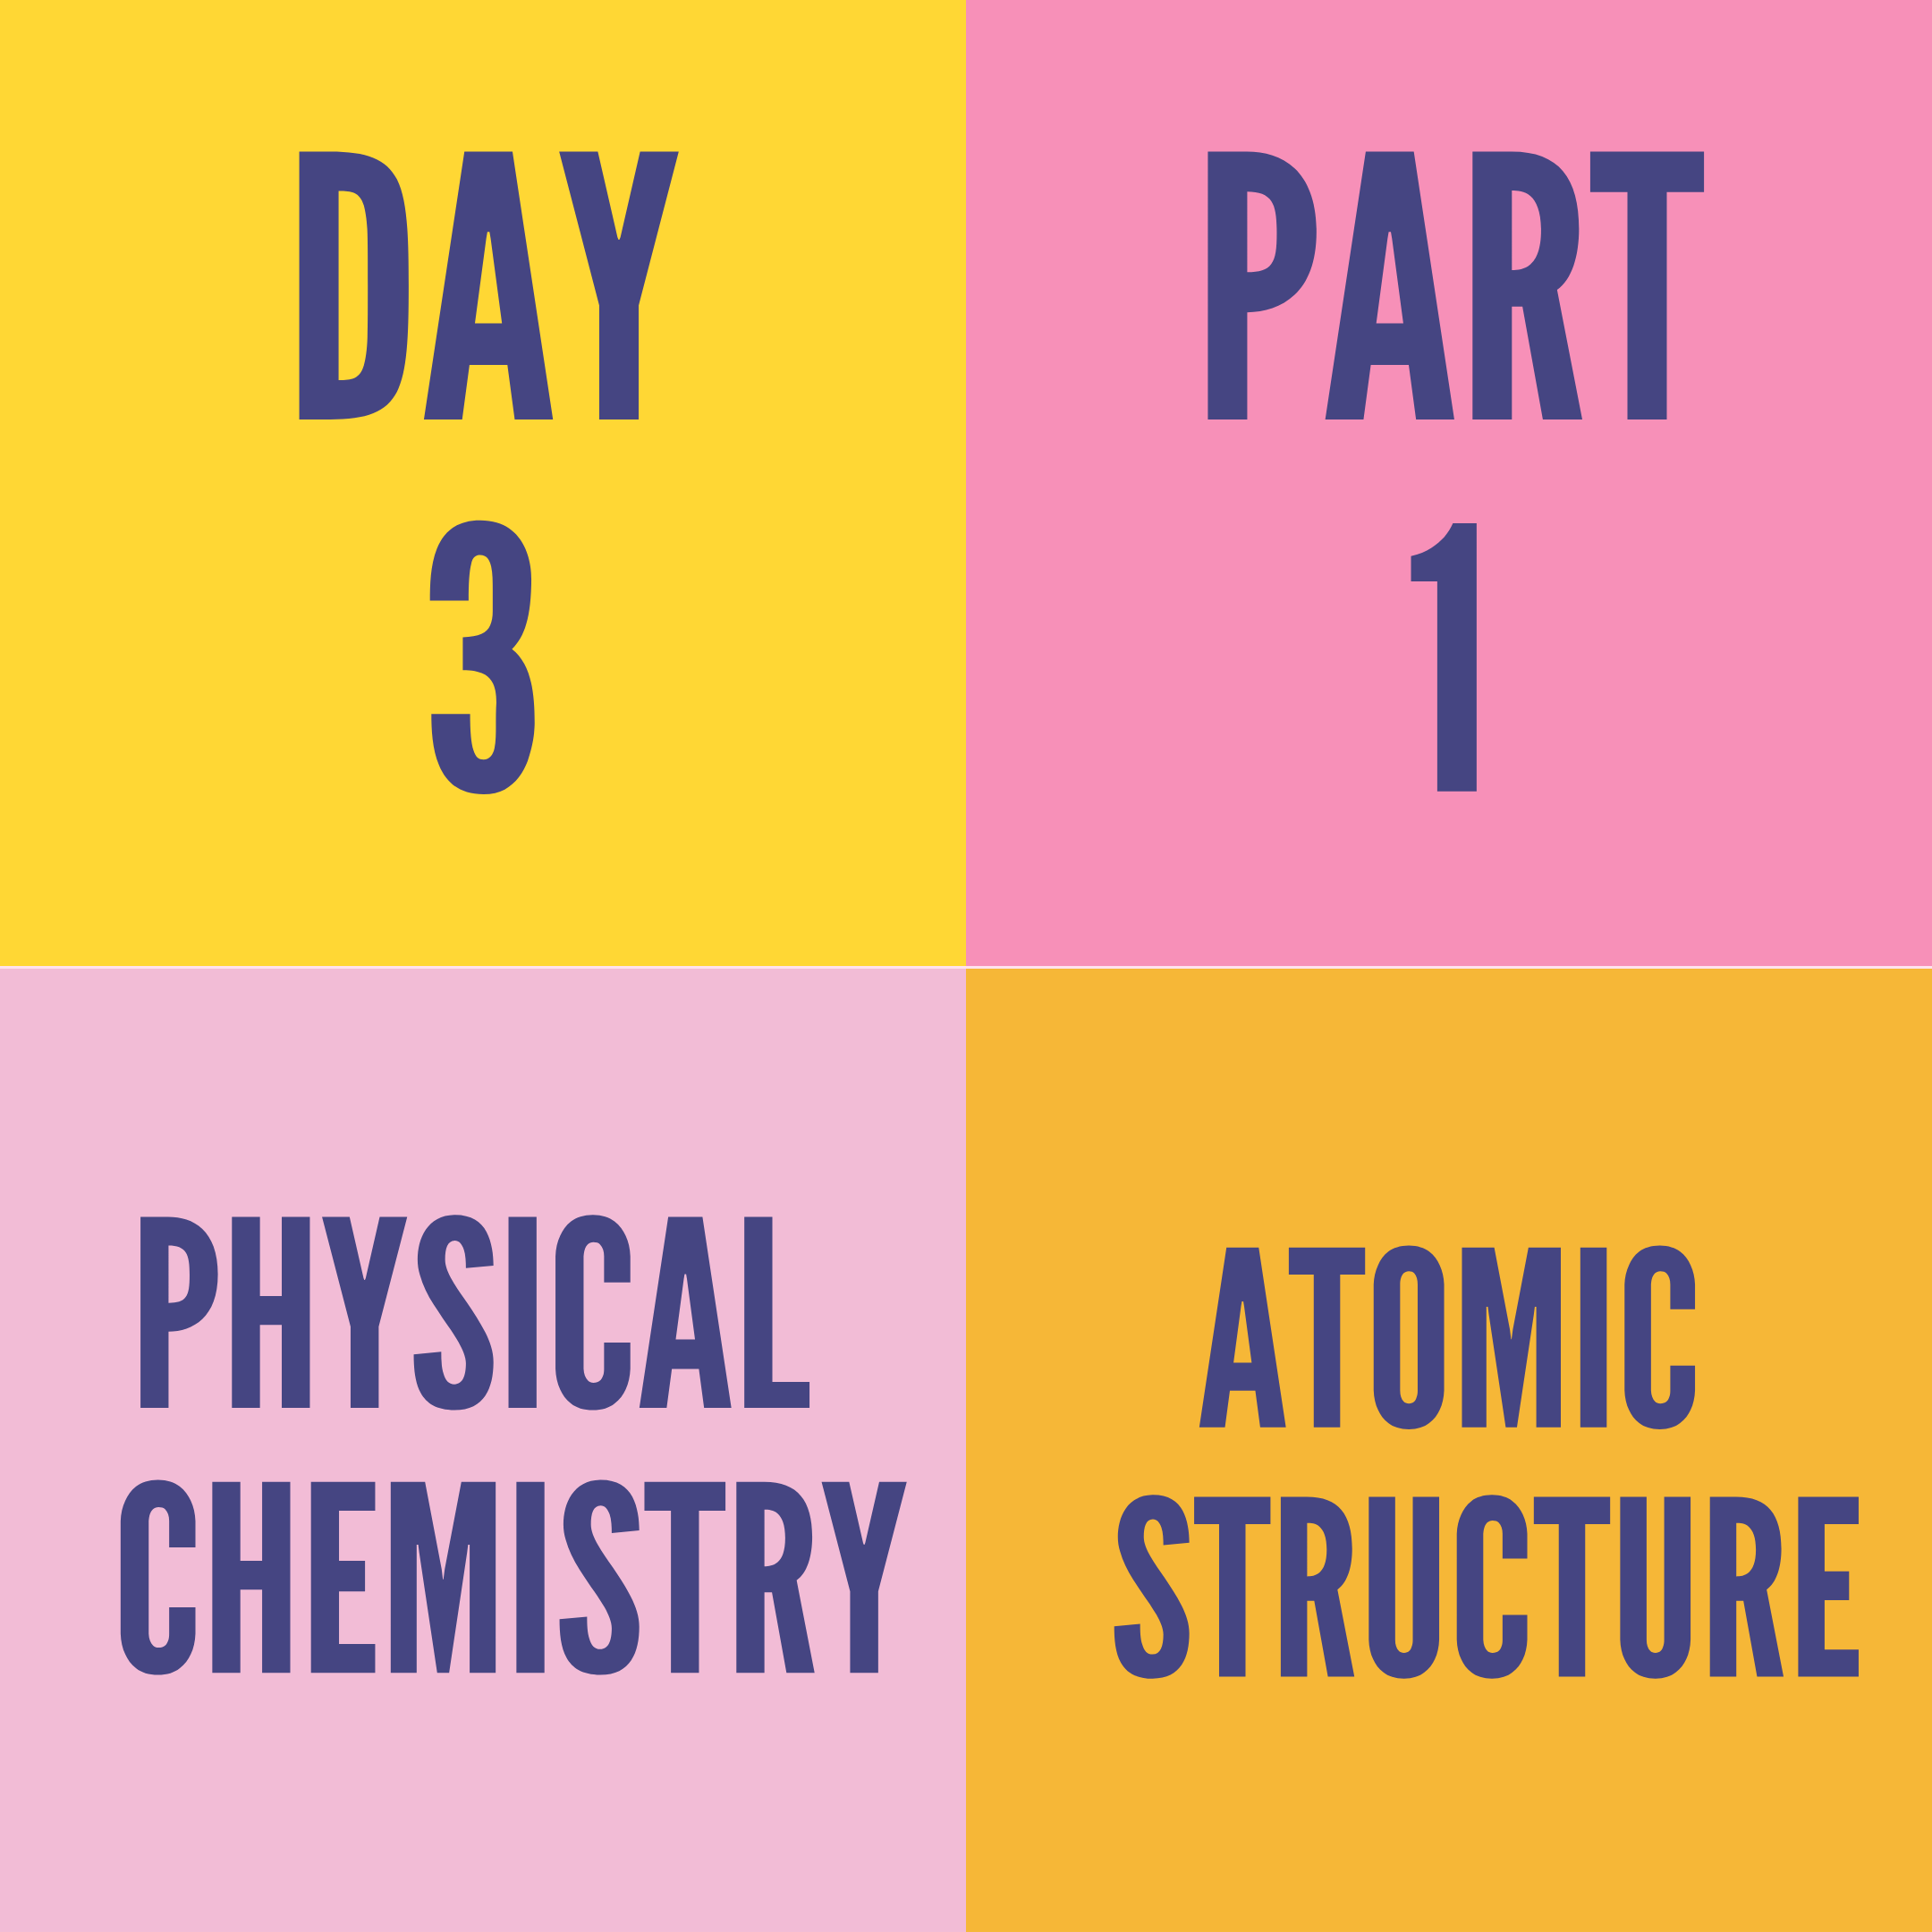 DAY-3 PART-1 ATOMIC STRUCTURE